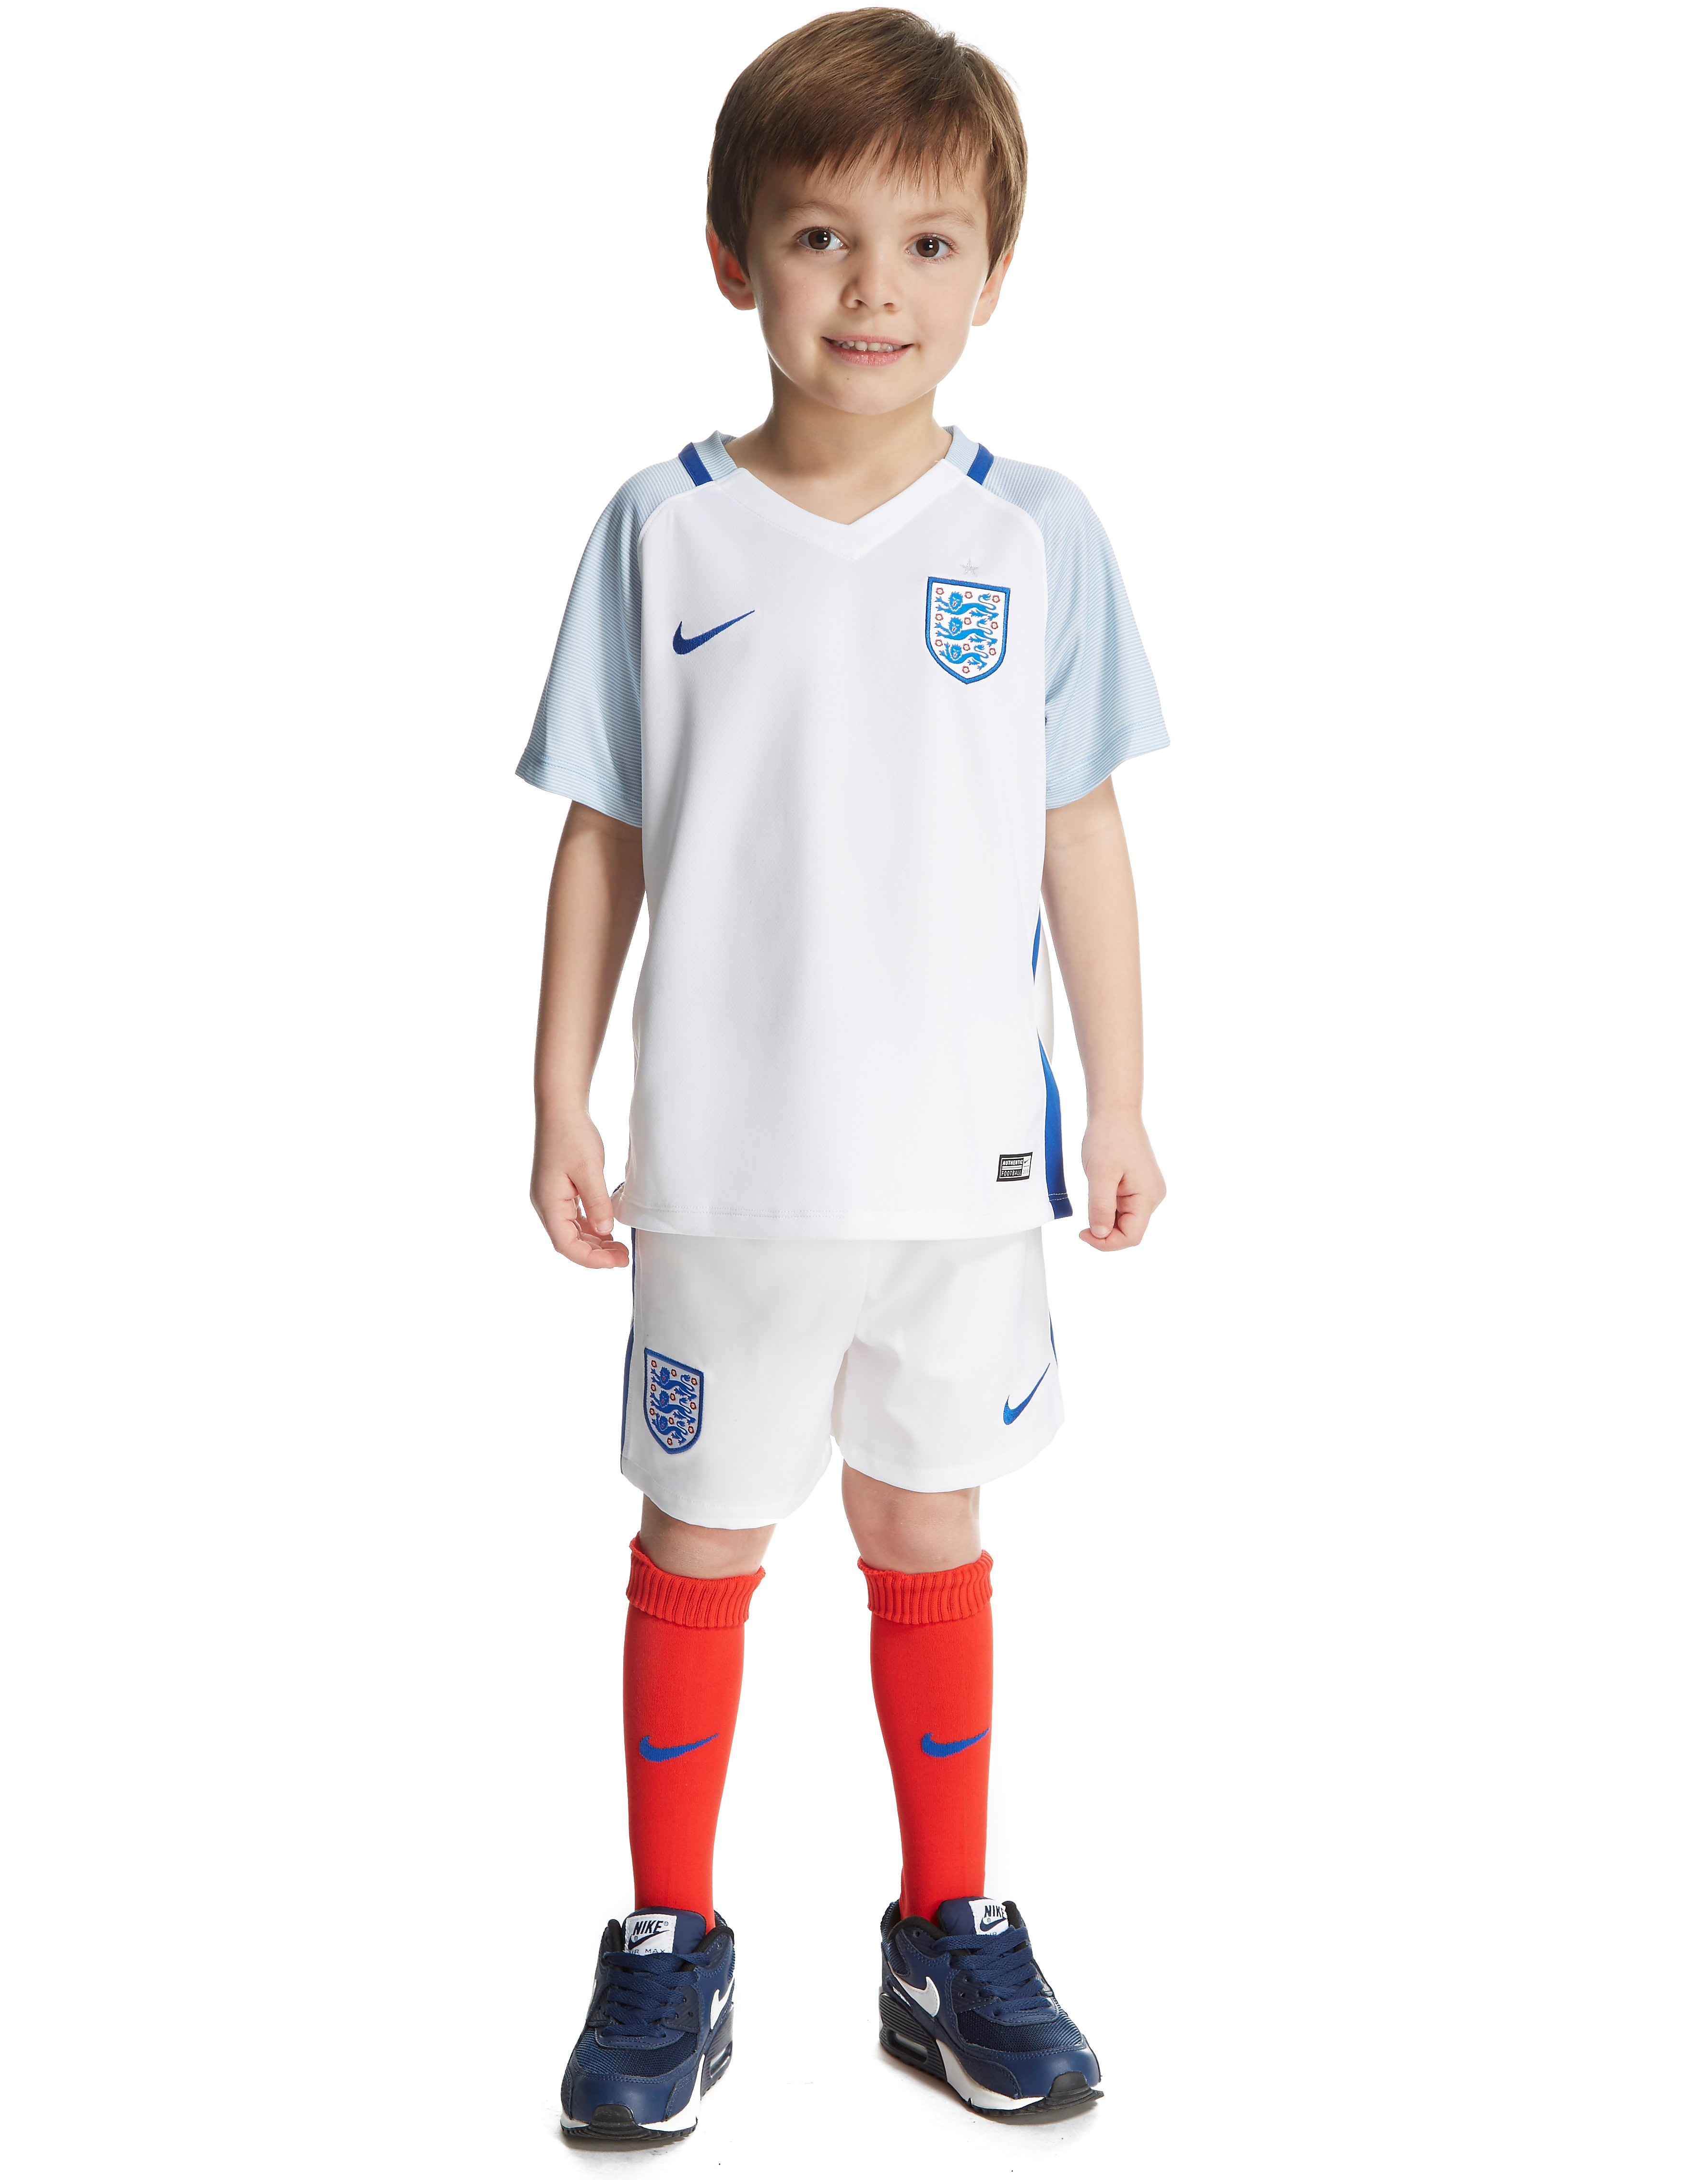 International Football Shirts / England Football Shirts; Refine Refine & Sort England Football Shirts. products. Nike England Away Kit Baby. From $ $ Sizes: mths, mths, mths, mths FA England Crest T Shirt Kids. $ $ Sizes: FA England Large Crest T Shirt Junior.